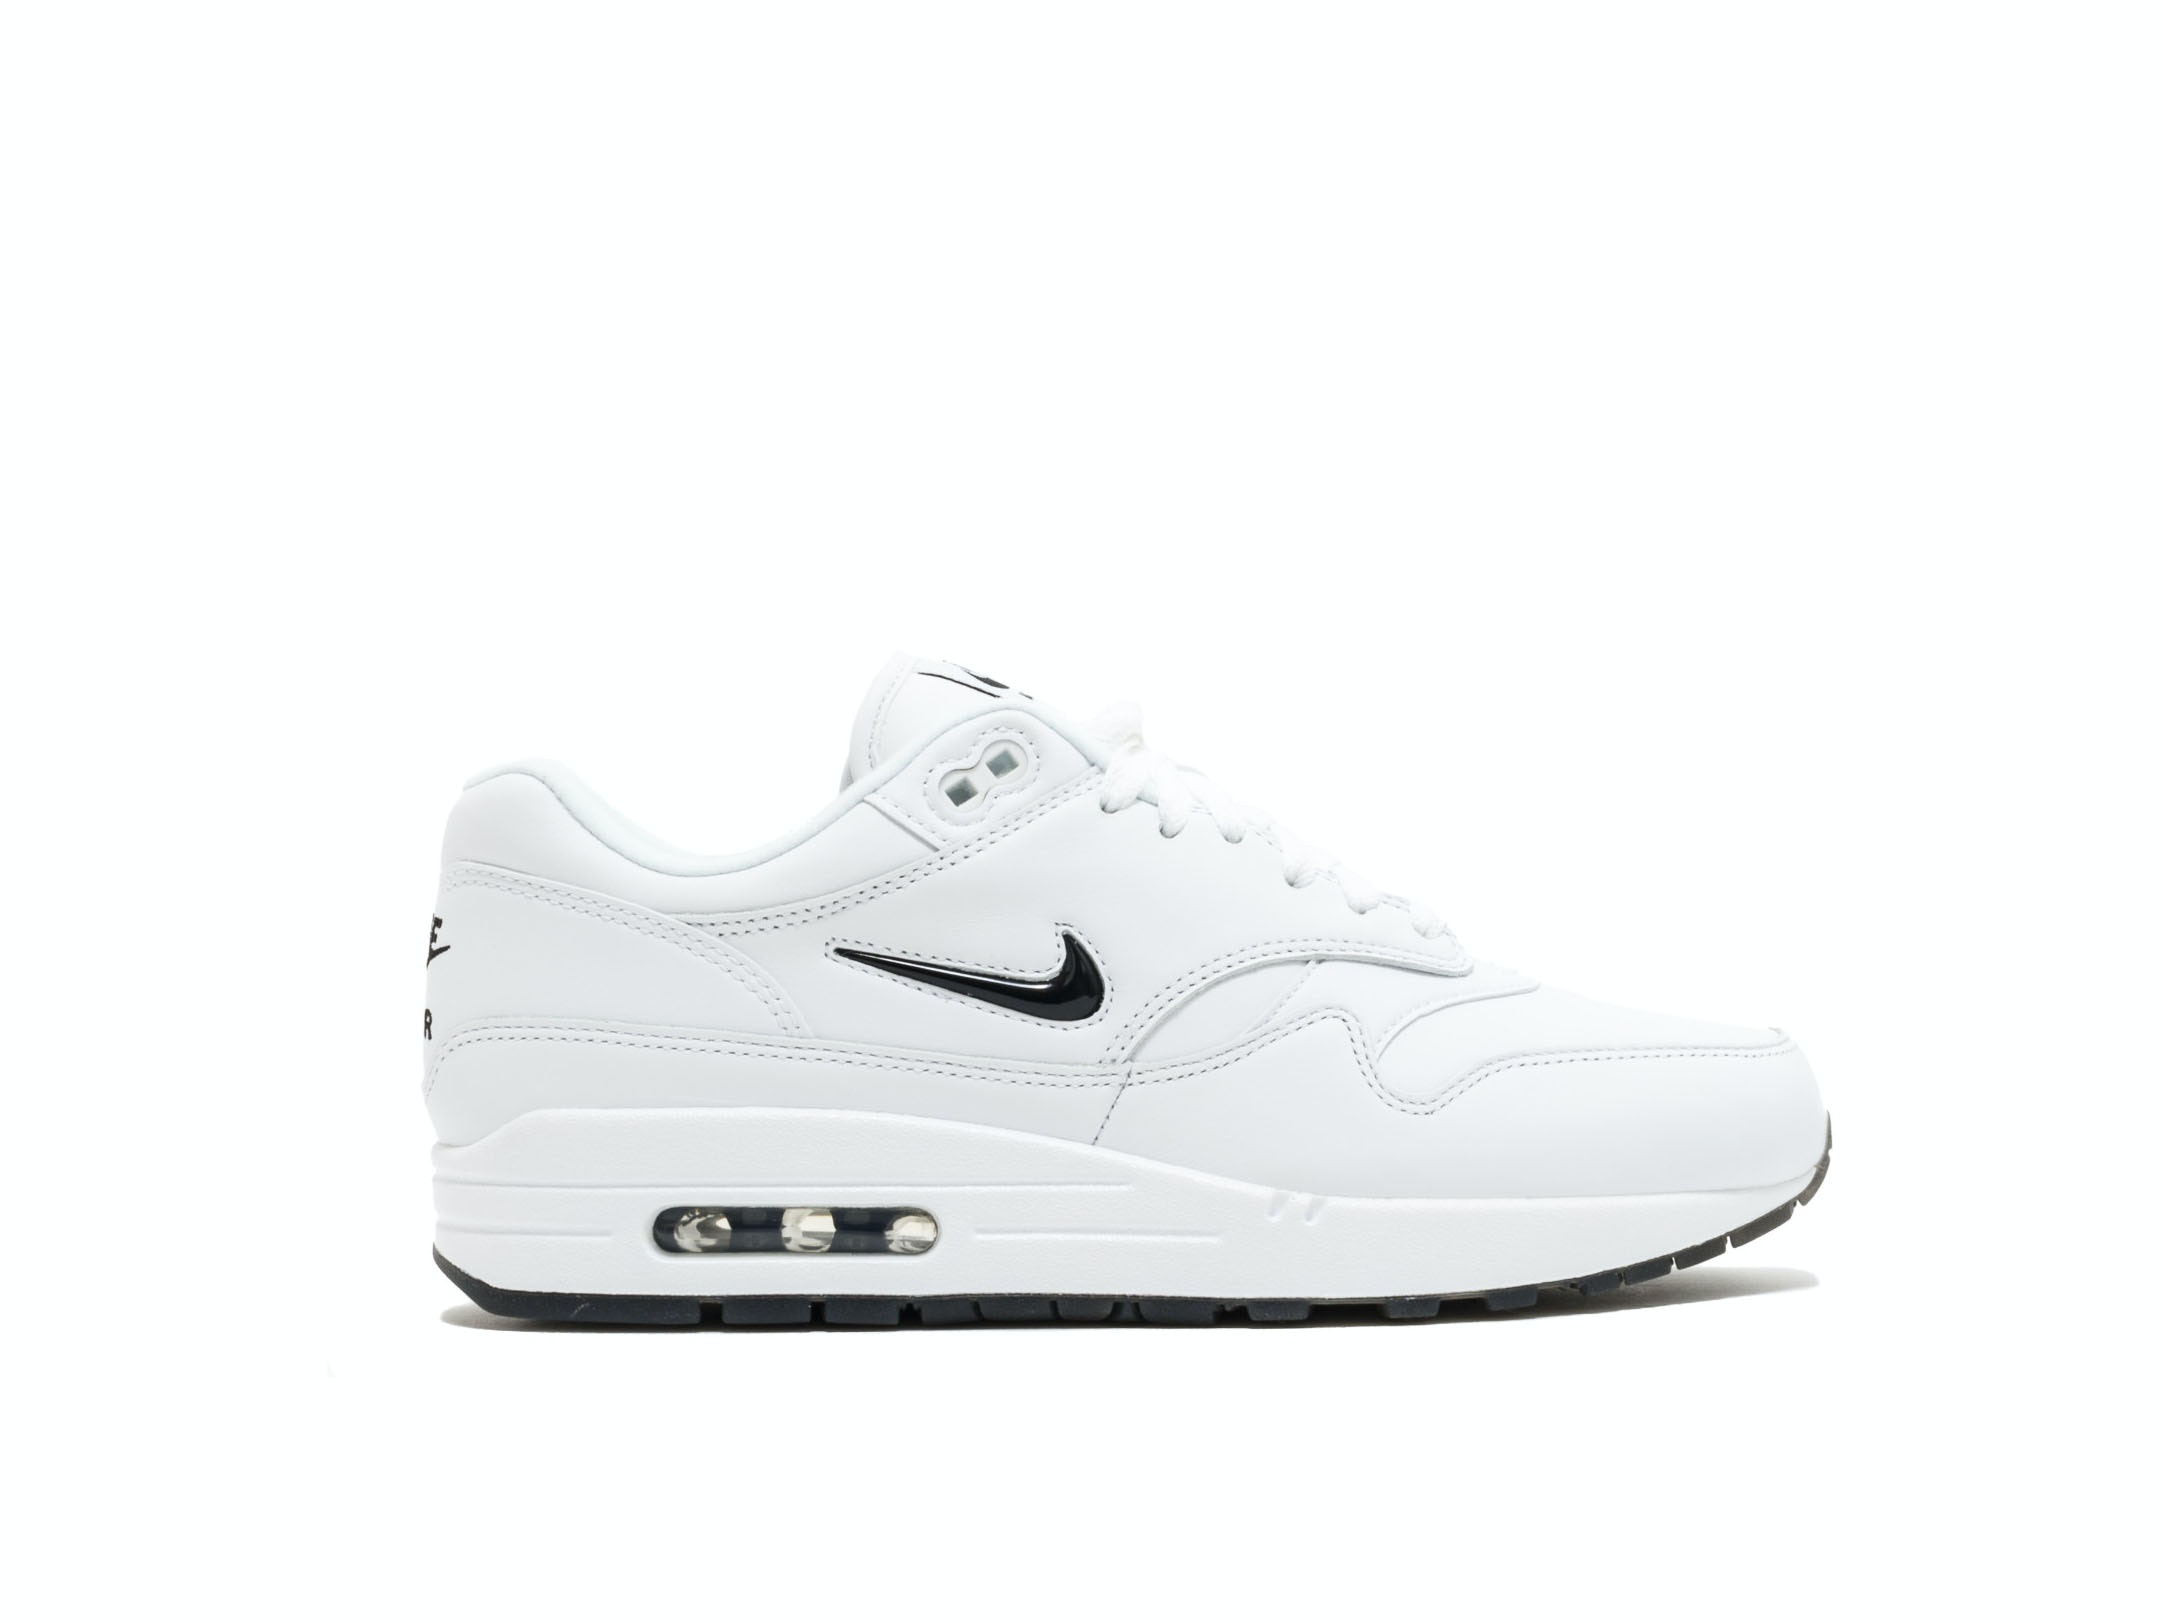 buy online 63837 91eee Air Max 1 Premium SC Jewel White Black